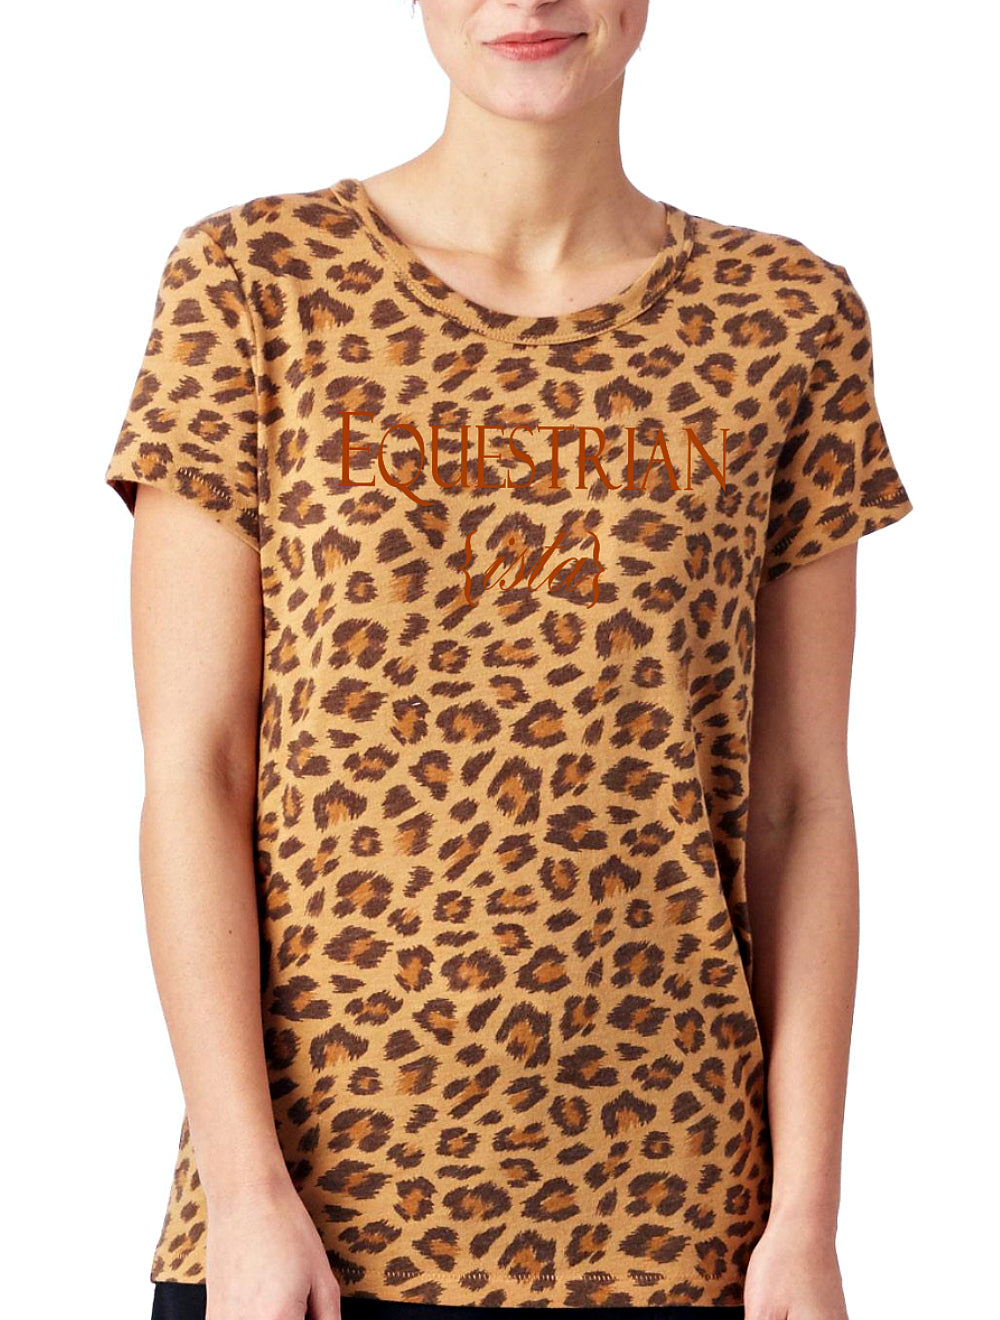 Women's Equestrian Leopard Print Crew Neck Shirt by Equestrianista Brand Apparel.